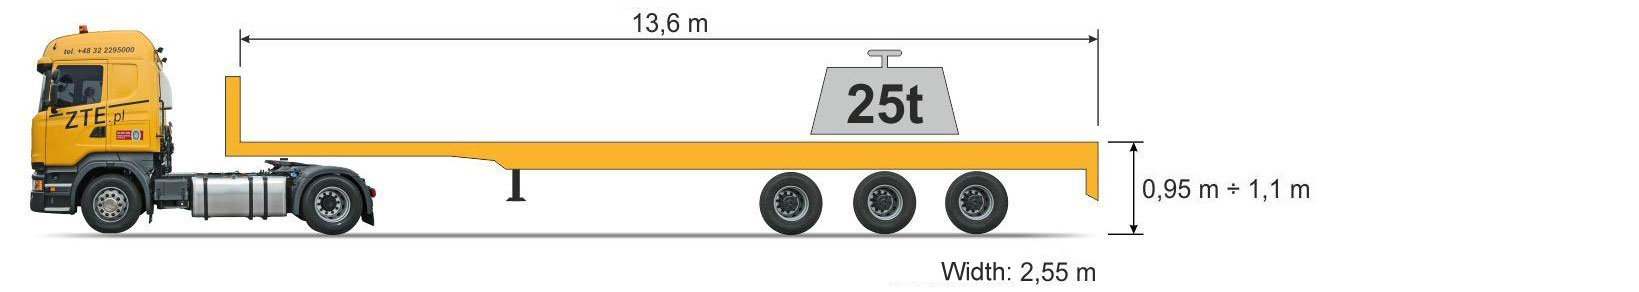 Mega platform  type semi-trailer